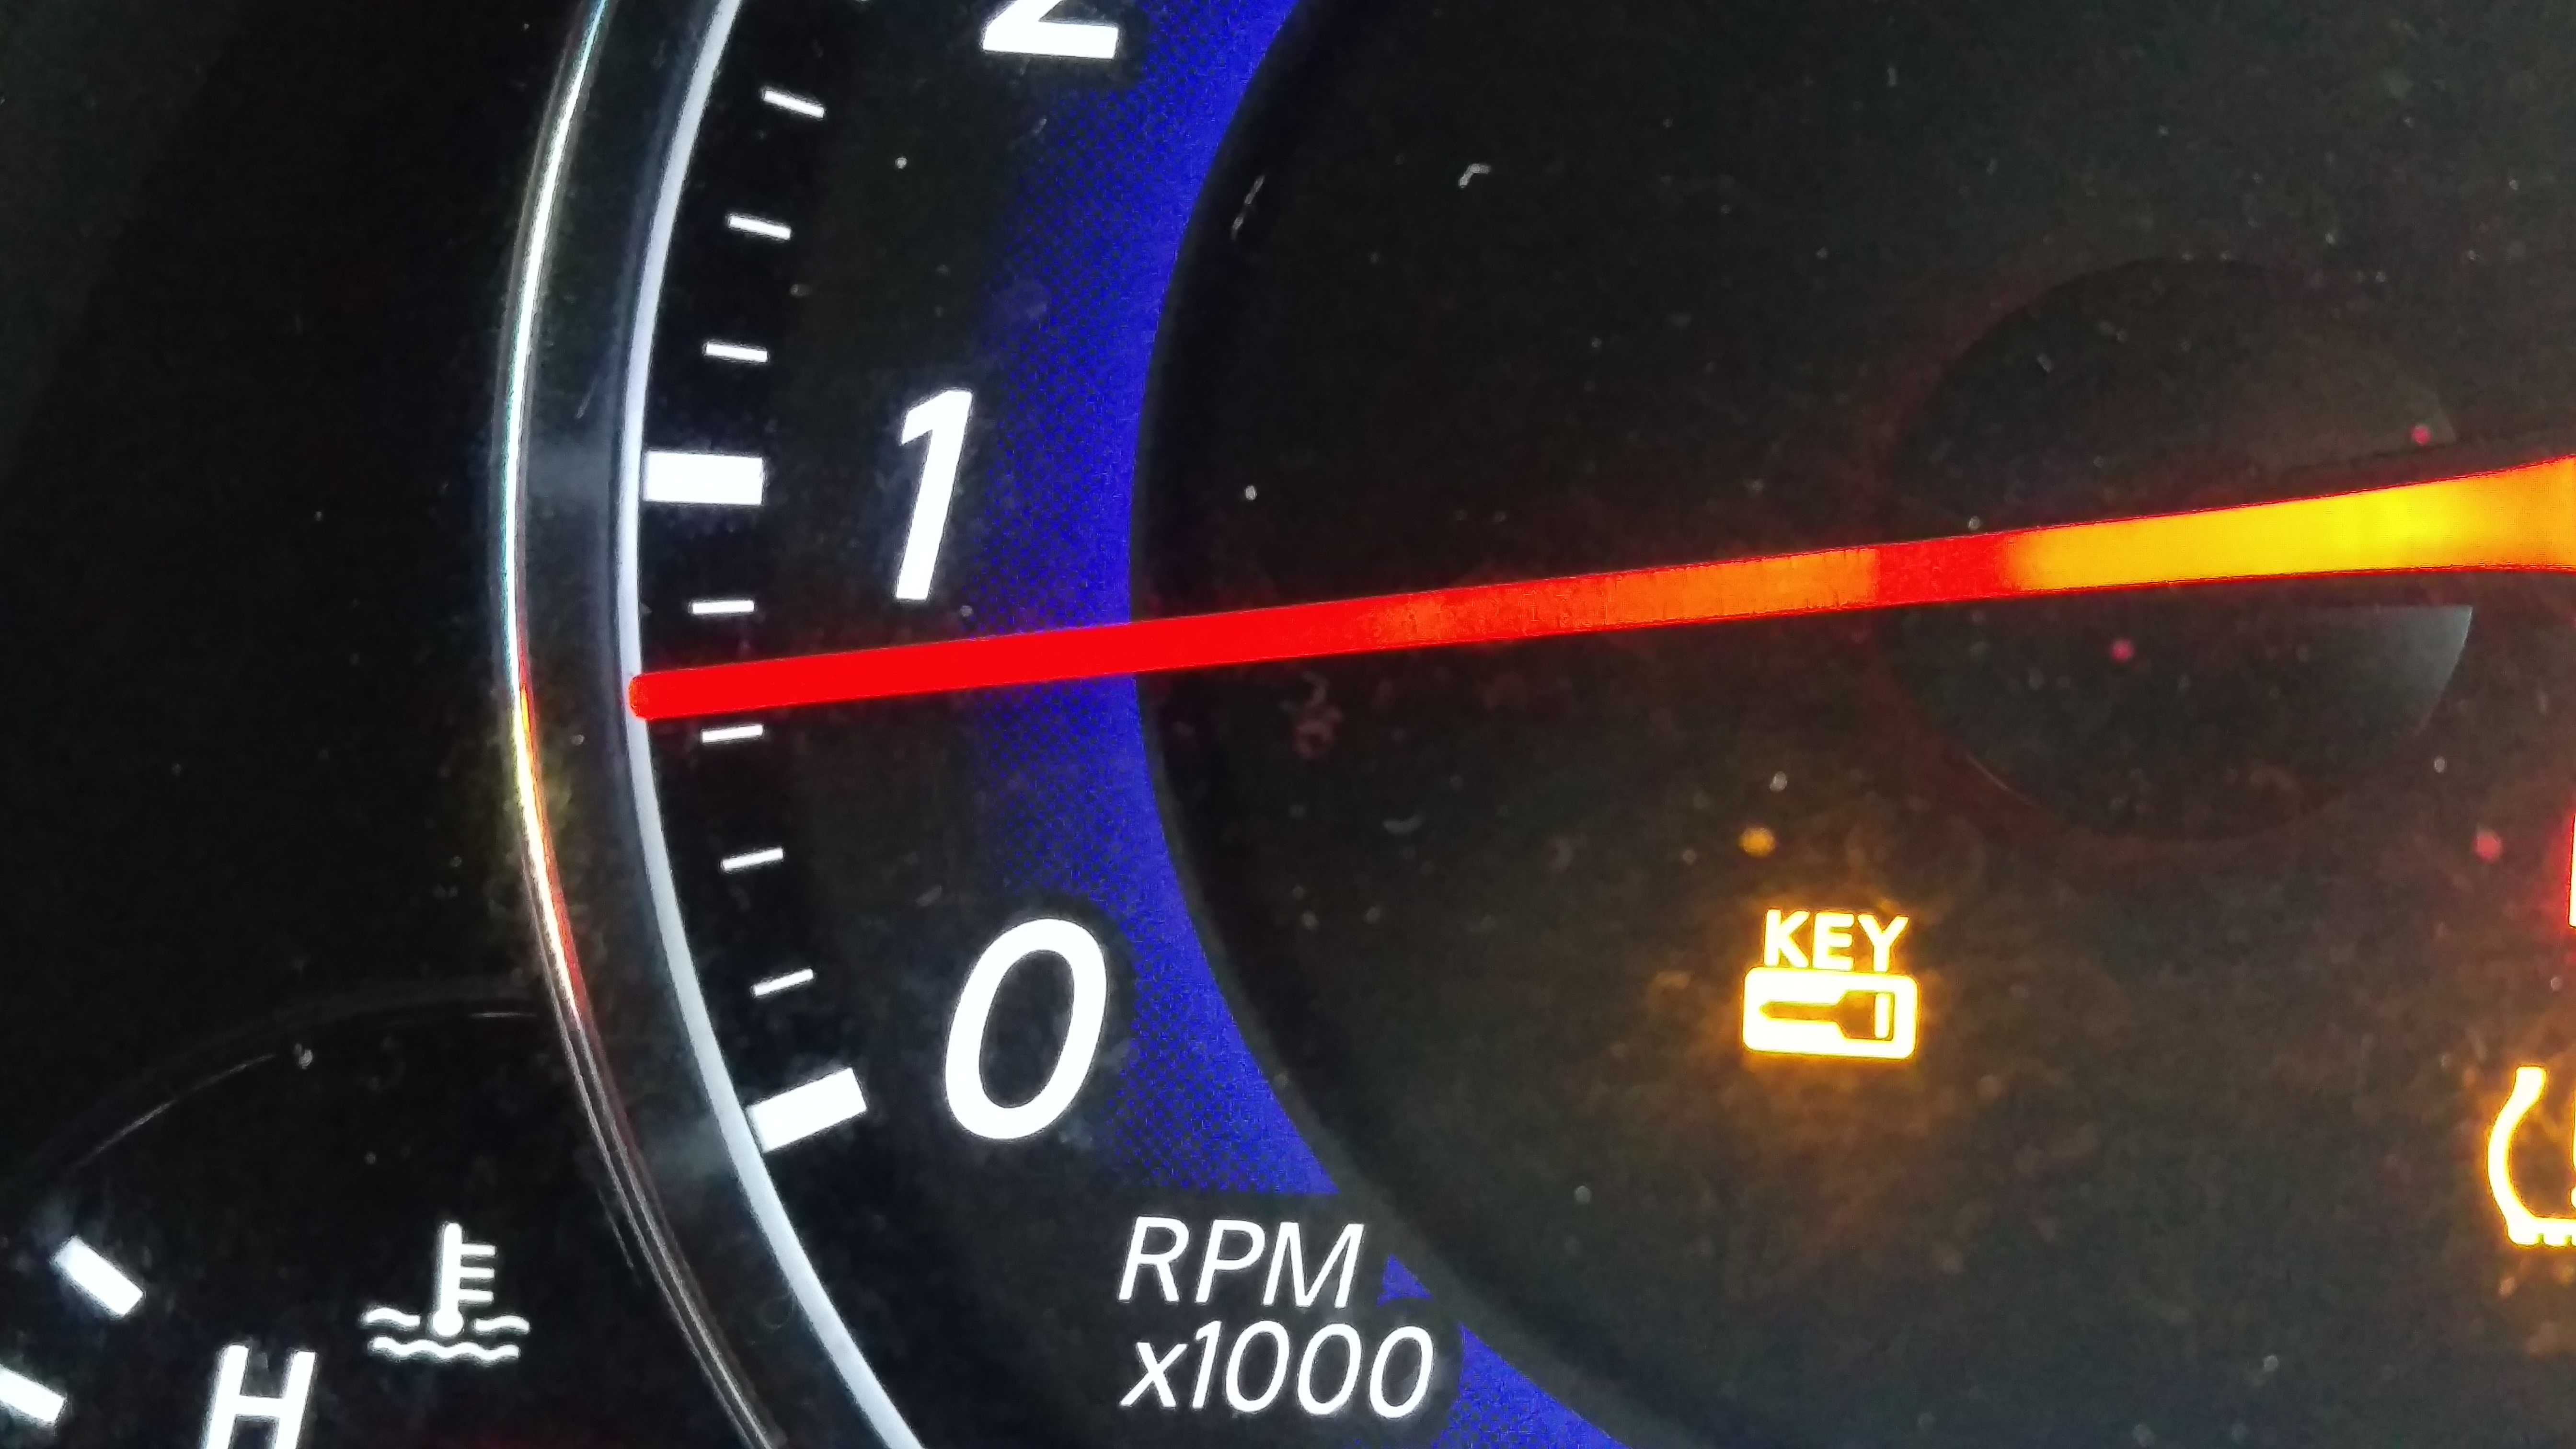 On My 2008 G35 I Get A Small Yellow Key Light Displayed Only When I